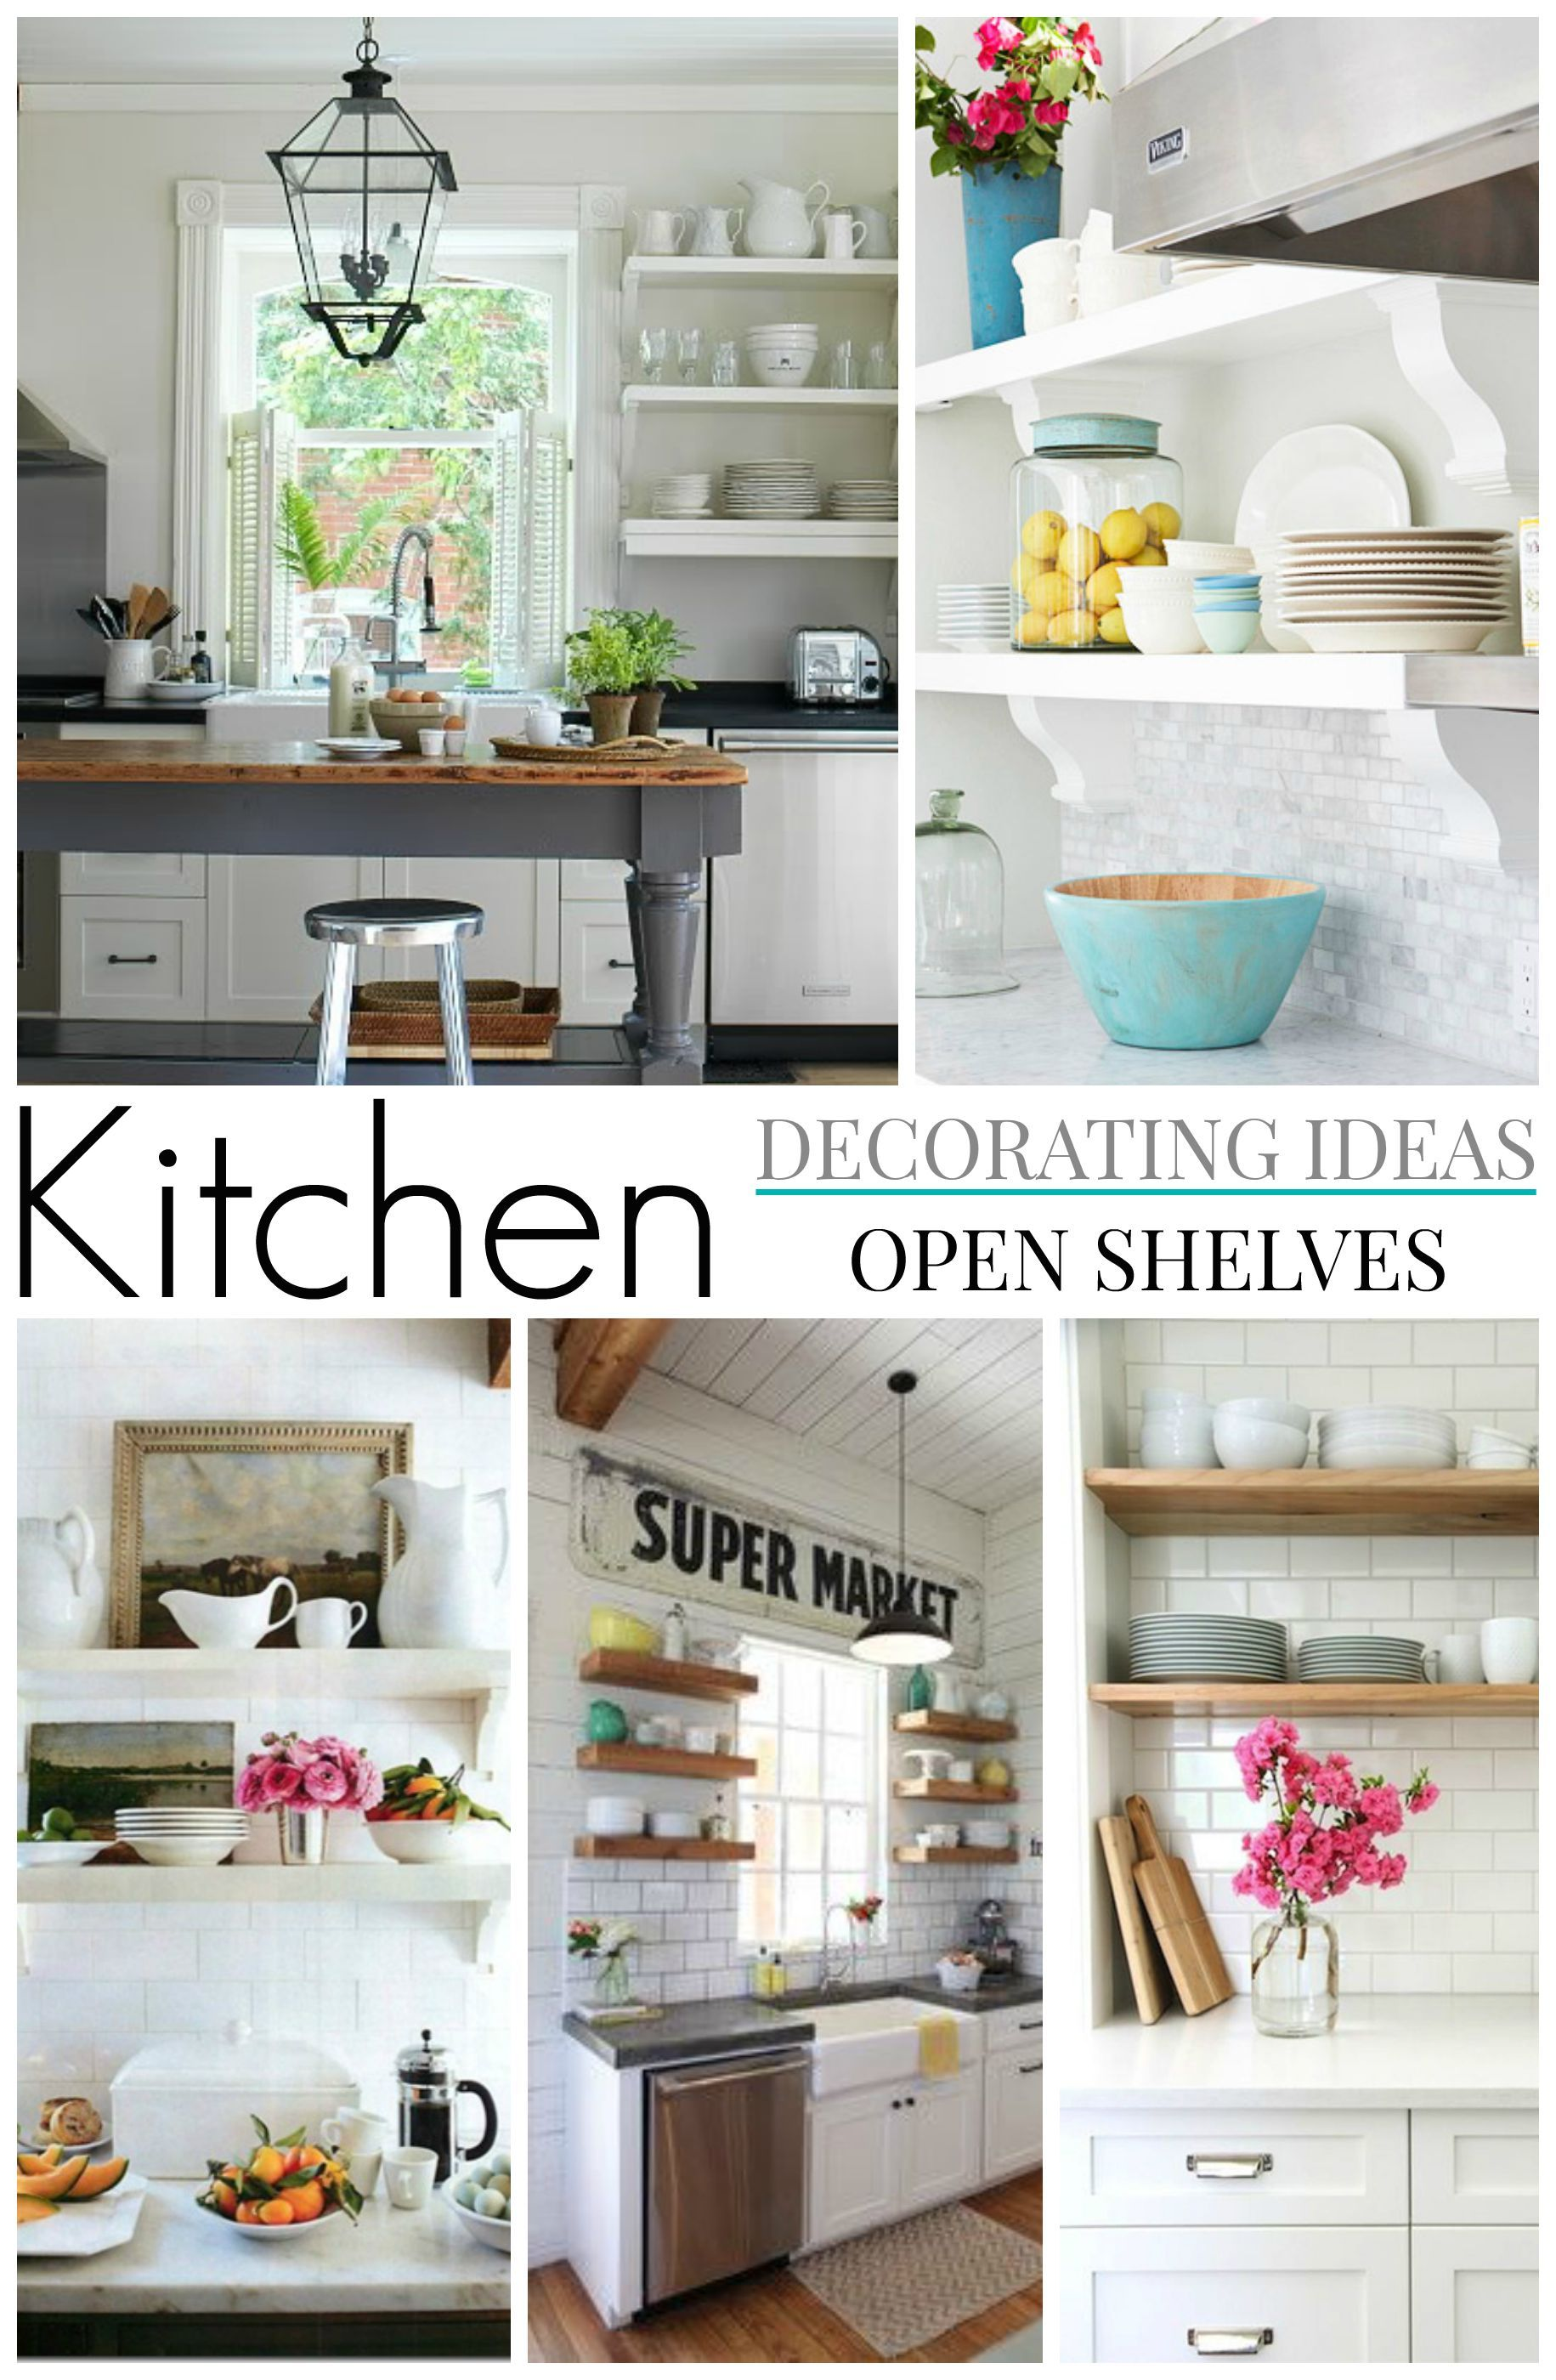 Gathering Ideas & Sharing inspiration For Our Guest Cottage Kitchen - Comparing shiplap to planked walls, and deciding on open shelf brackets and styles. #kitchen #kitchenideas #kitchendesign #openshelf #shelf #farmhousekitchen #cottagekitchen #kitchendecoratingideas